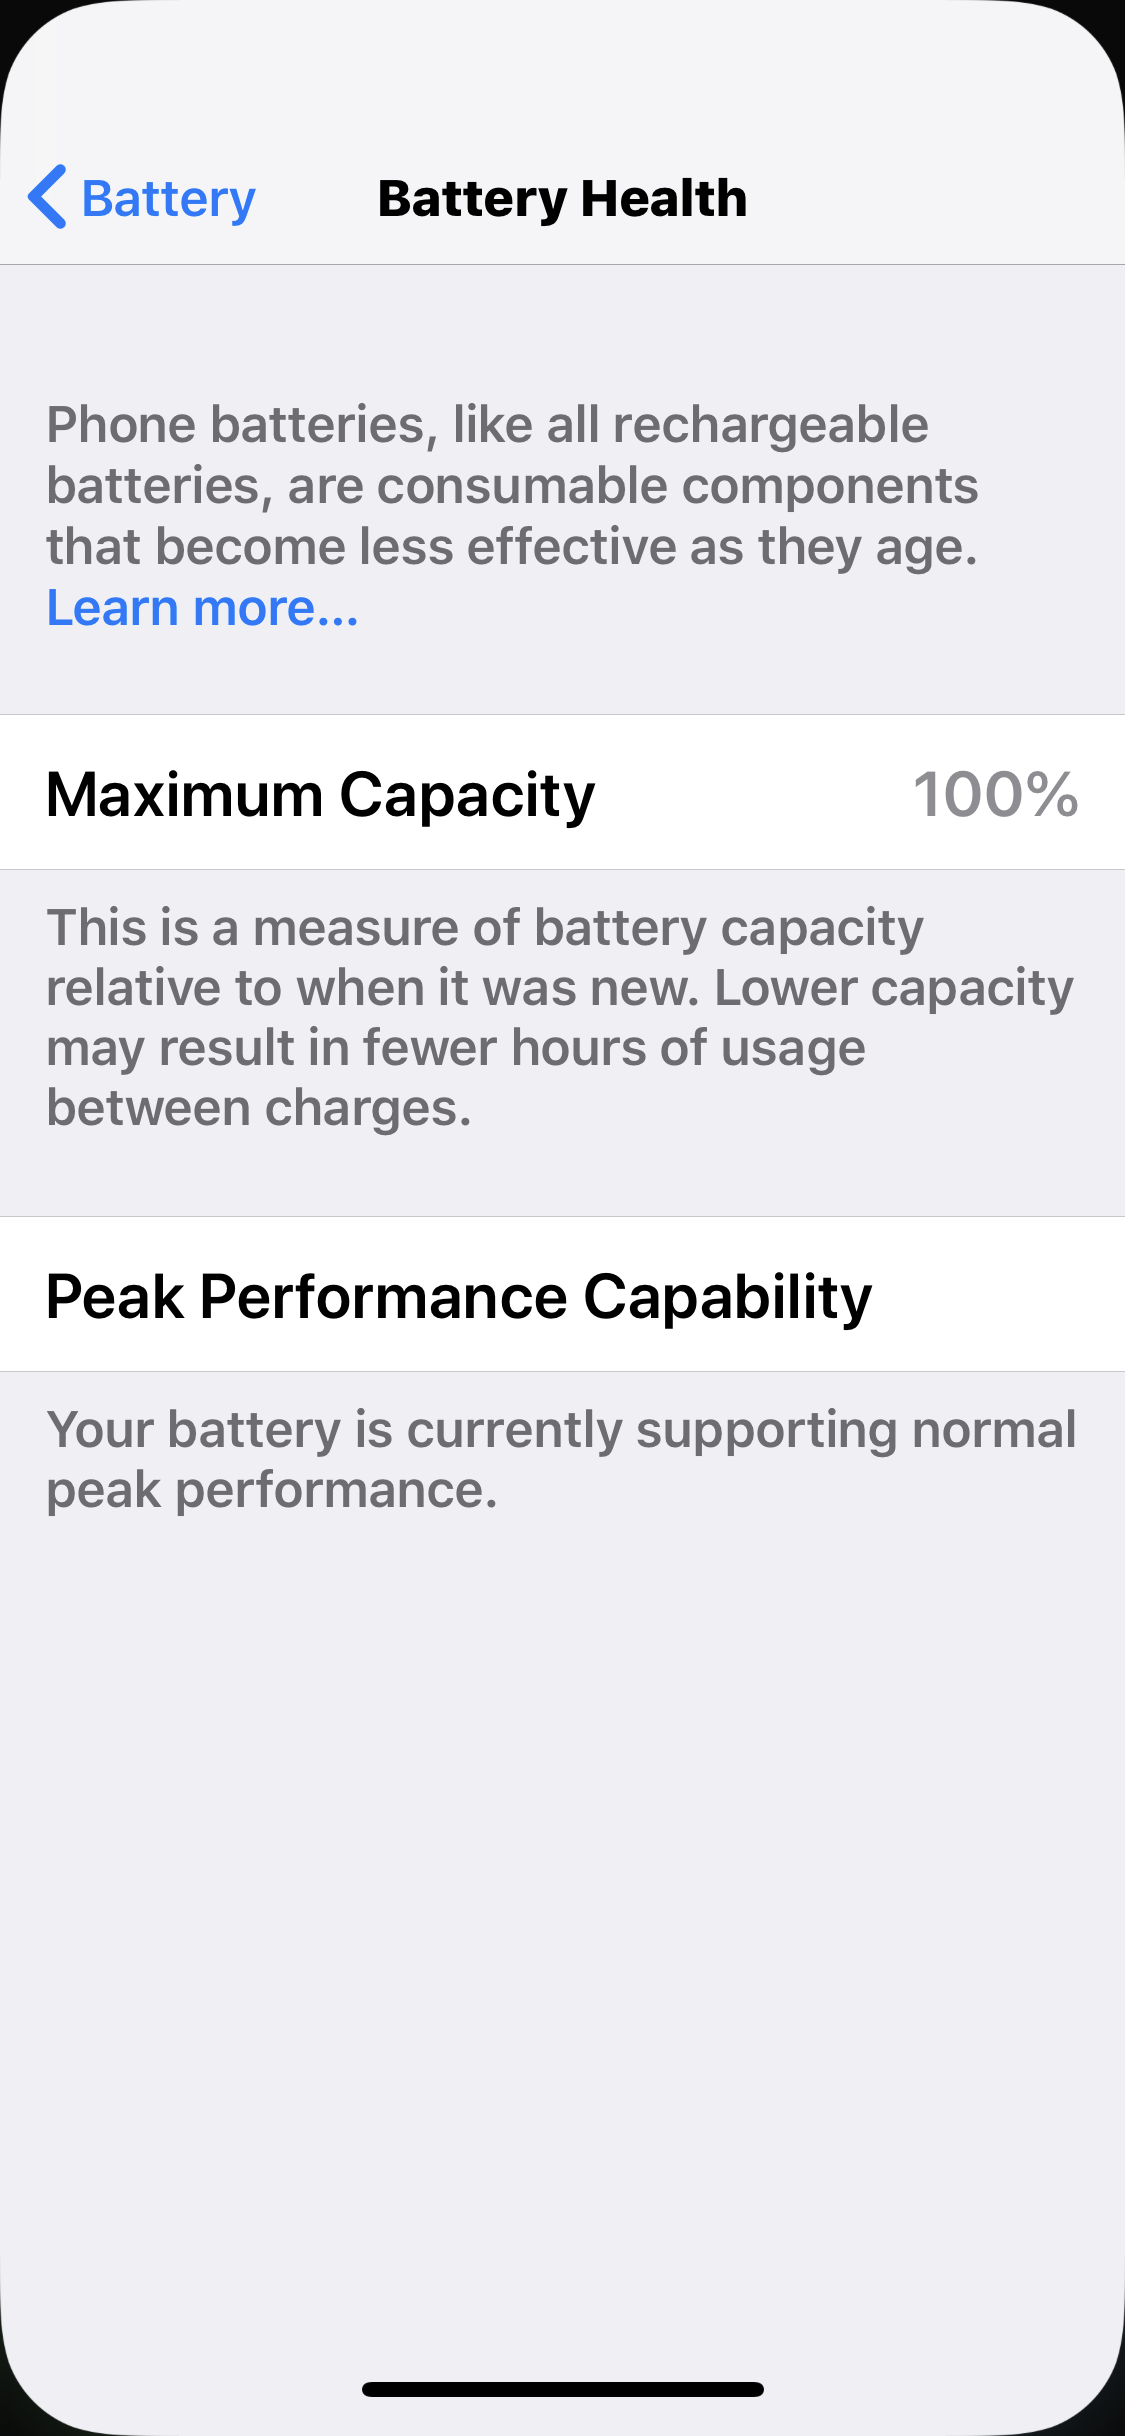 Battery Heath Now Down to 99% | MacRumors Forums